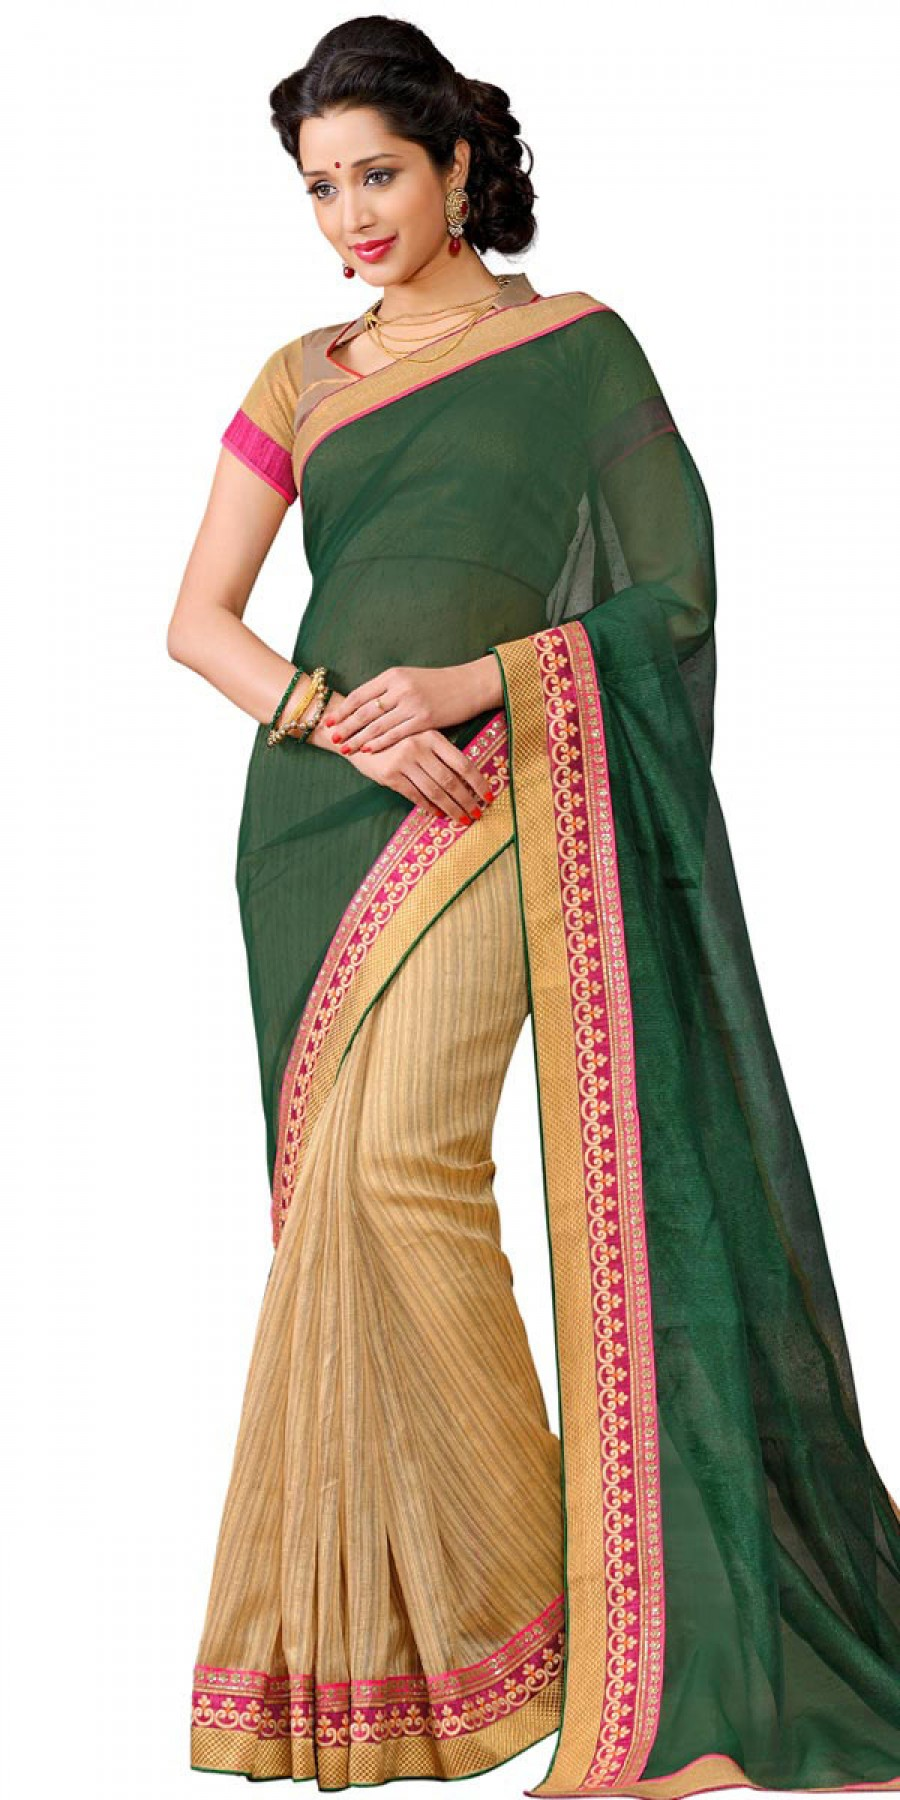 Buy Mystical Green And Cream Cotton Saree With Blouse. Online